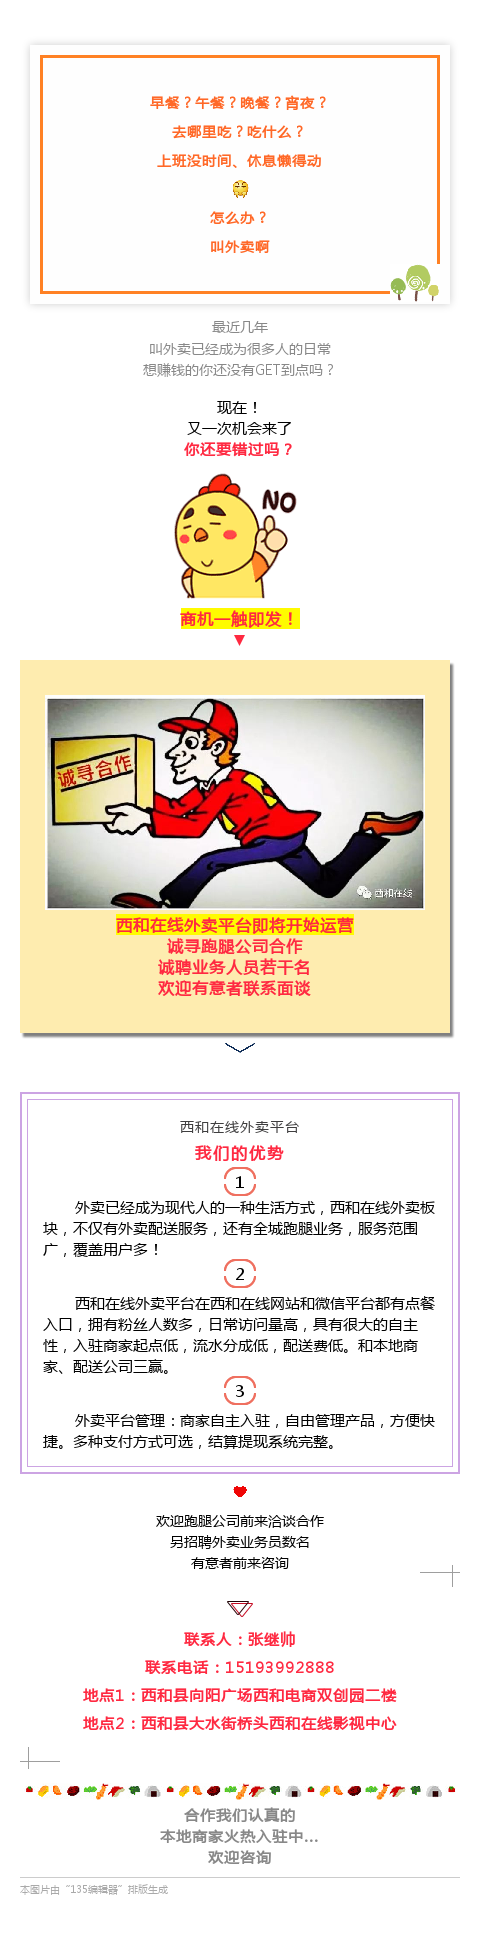 http://img7.g500.cn/upload/130/article/2018/05/12/5eb1b973-a49e-48f5-80b2-8b26bf9c3110.png